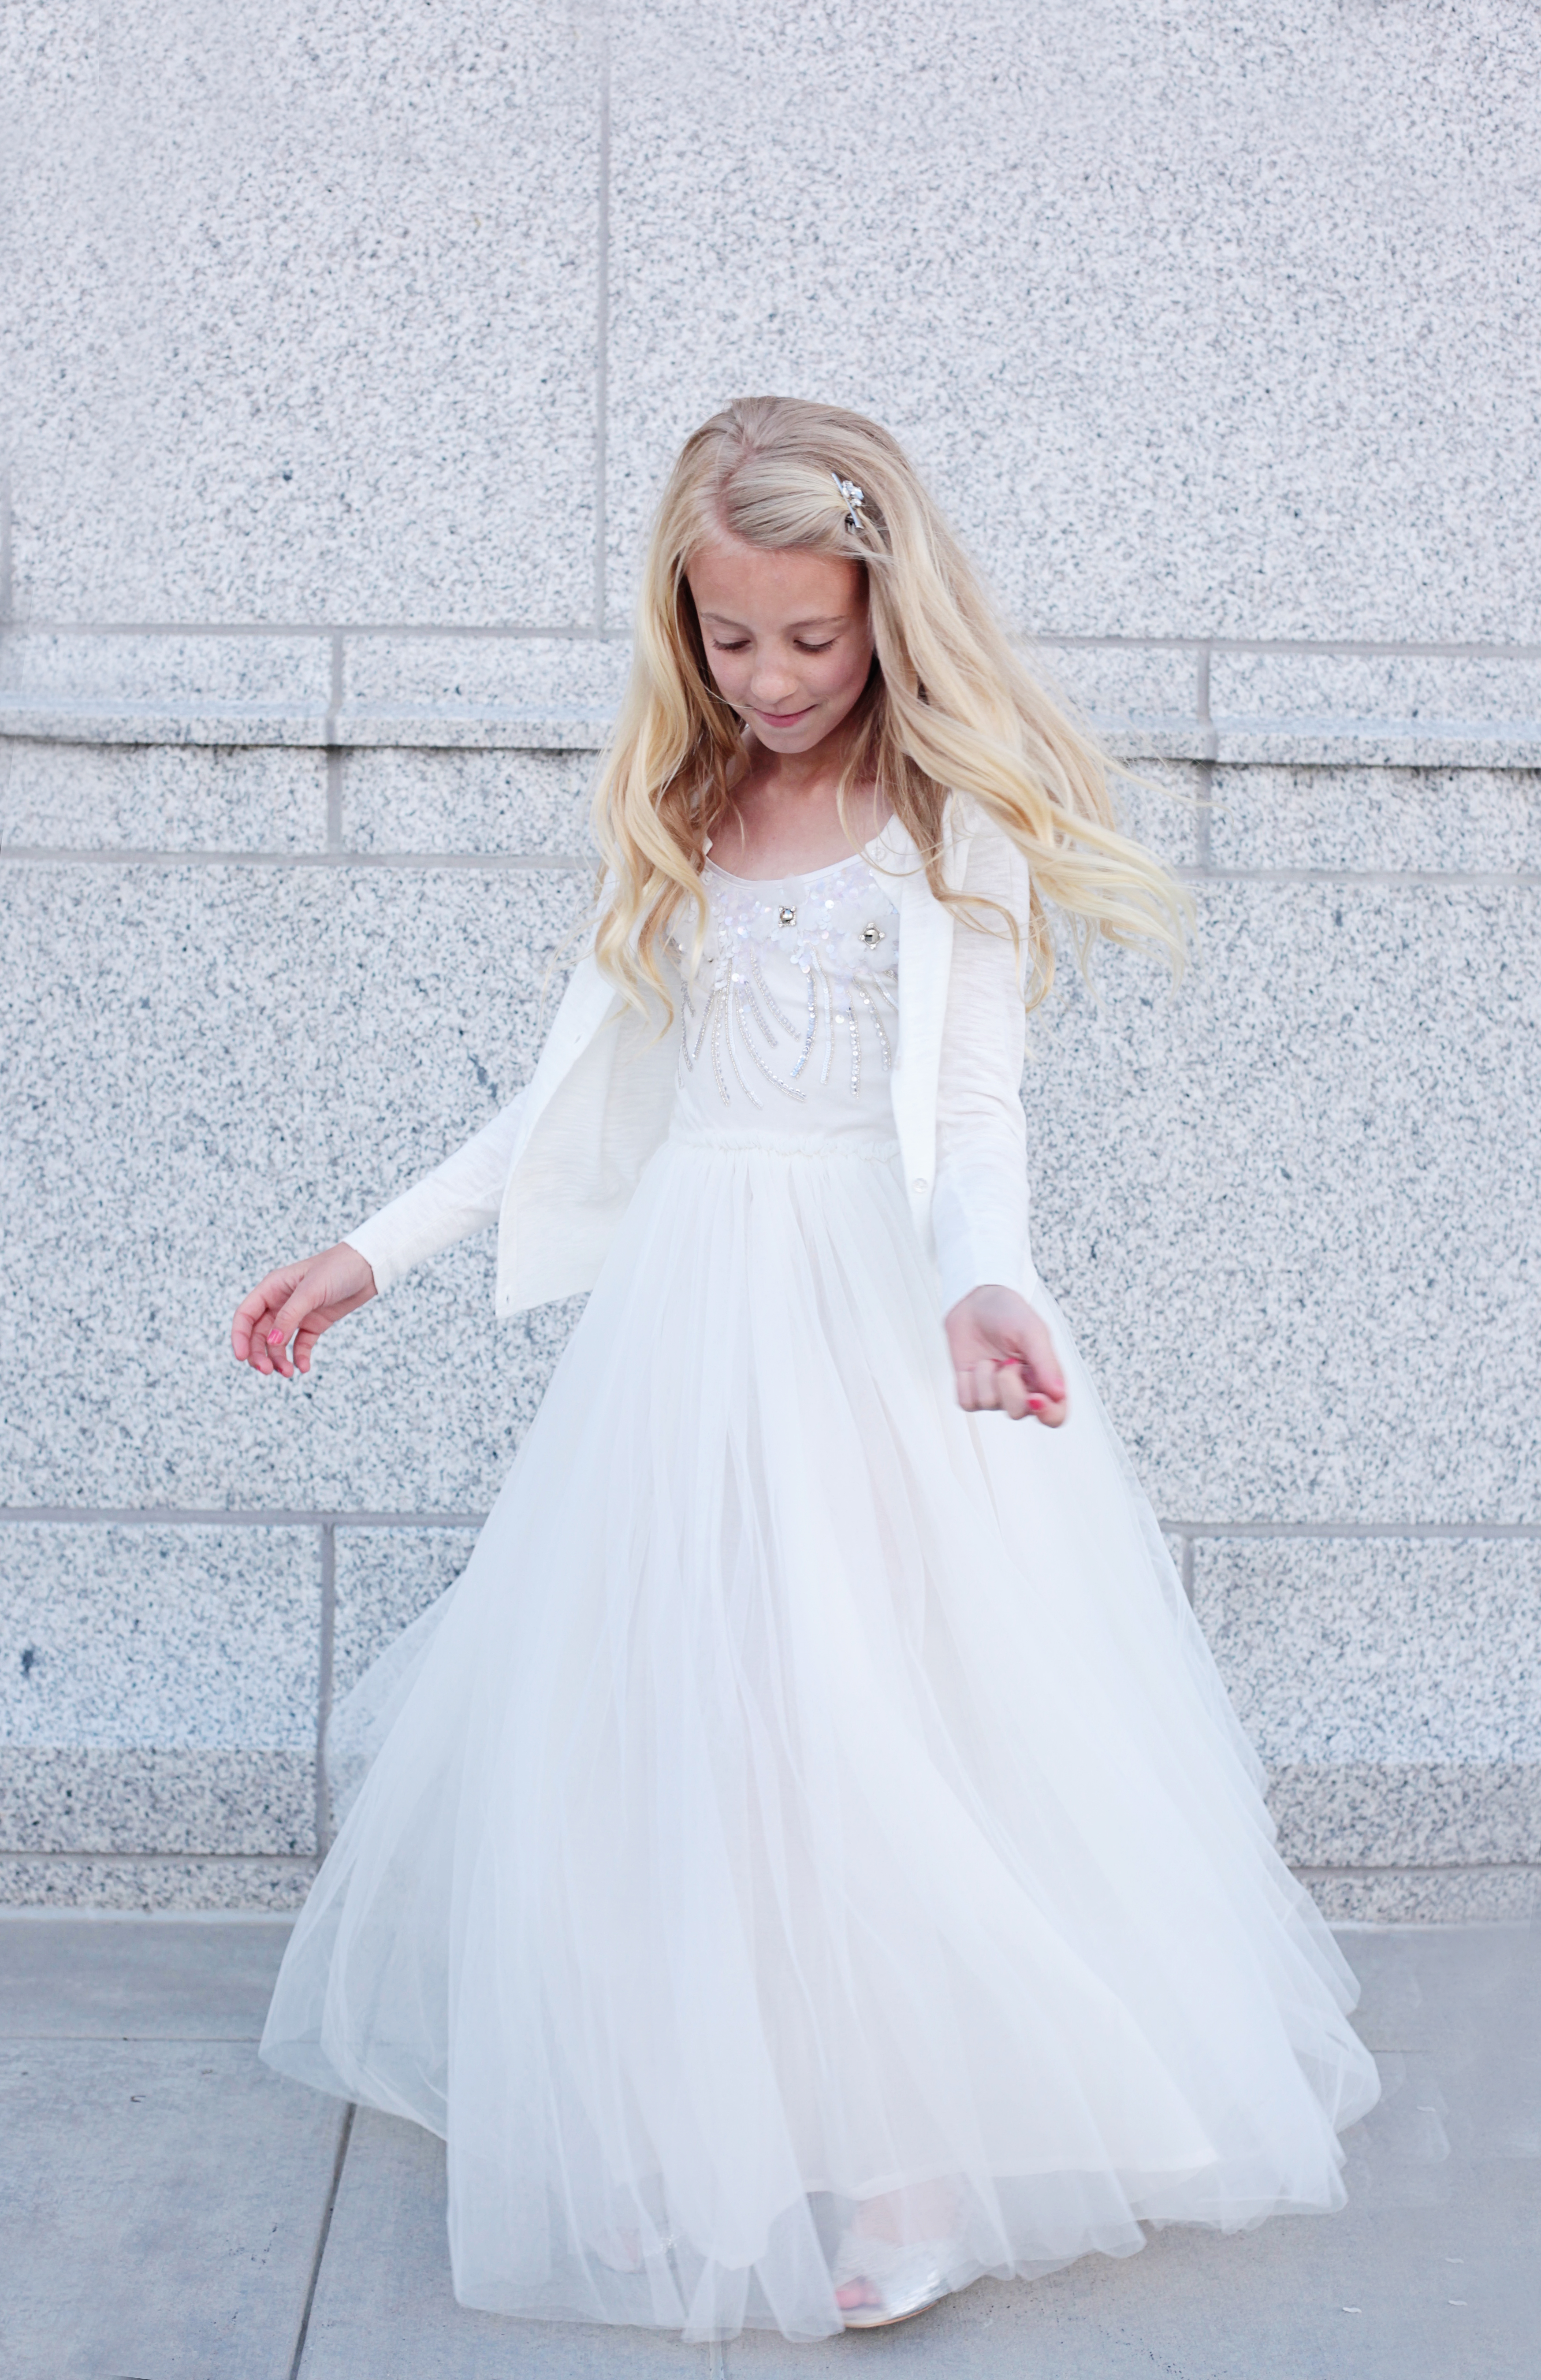 e07ebd4ab24 Wedding Details + Giveaway - Kailee Wright